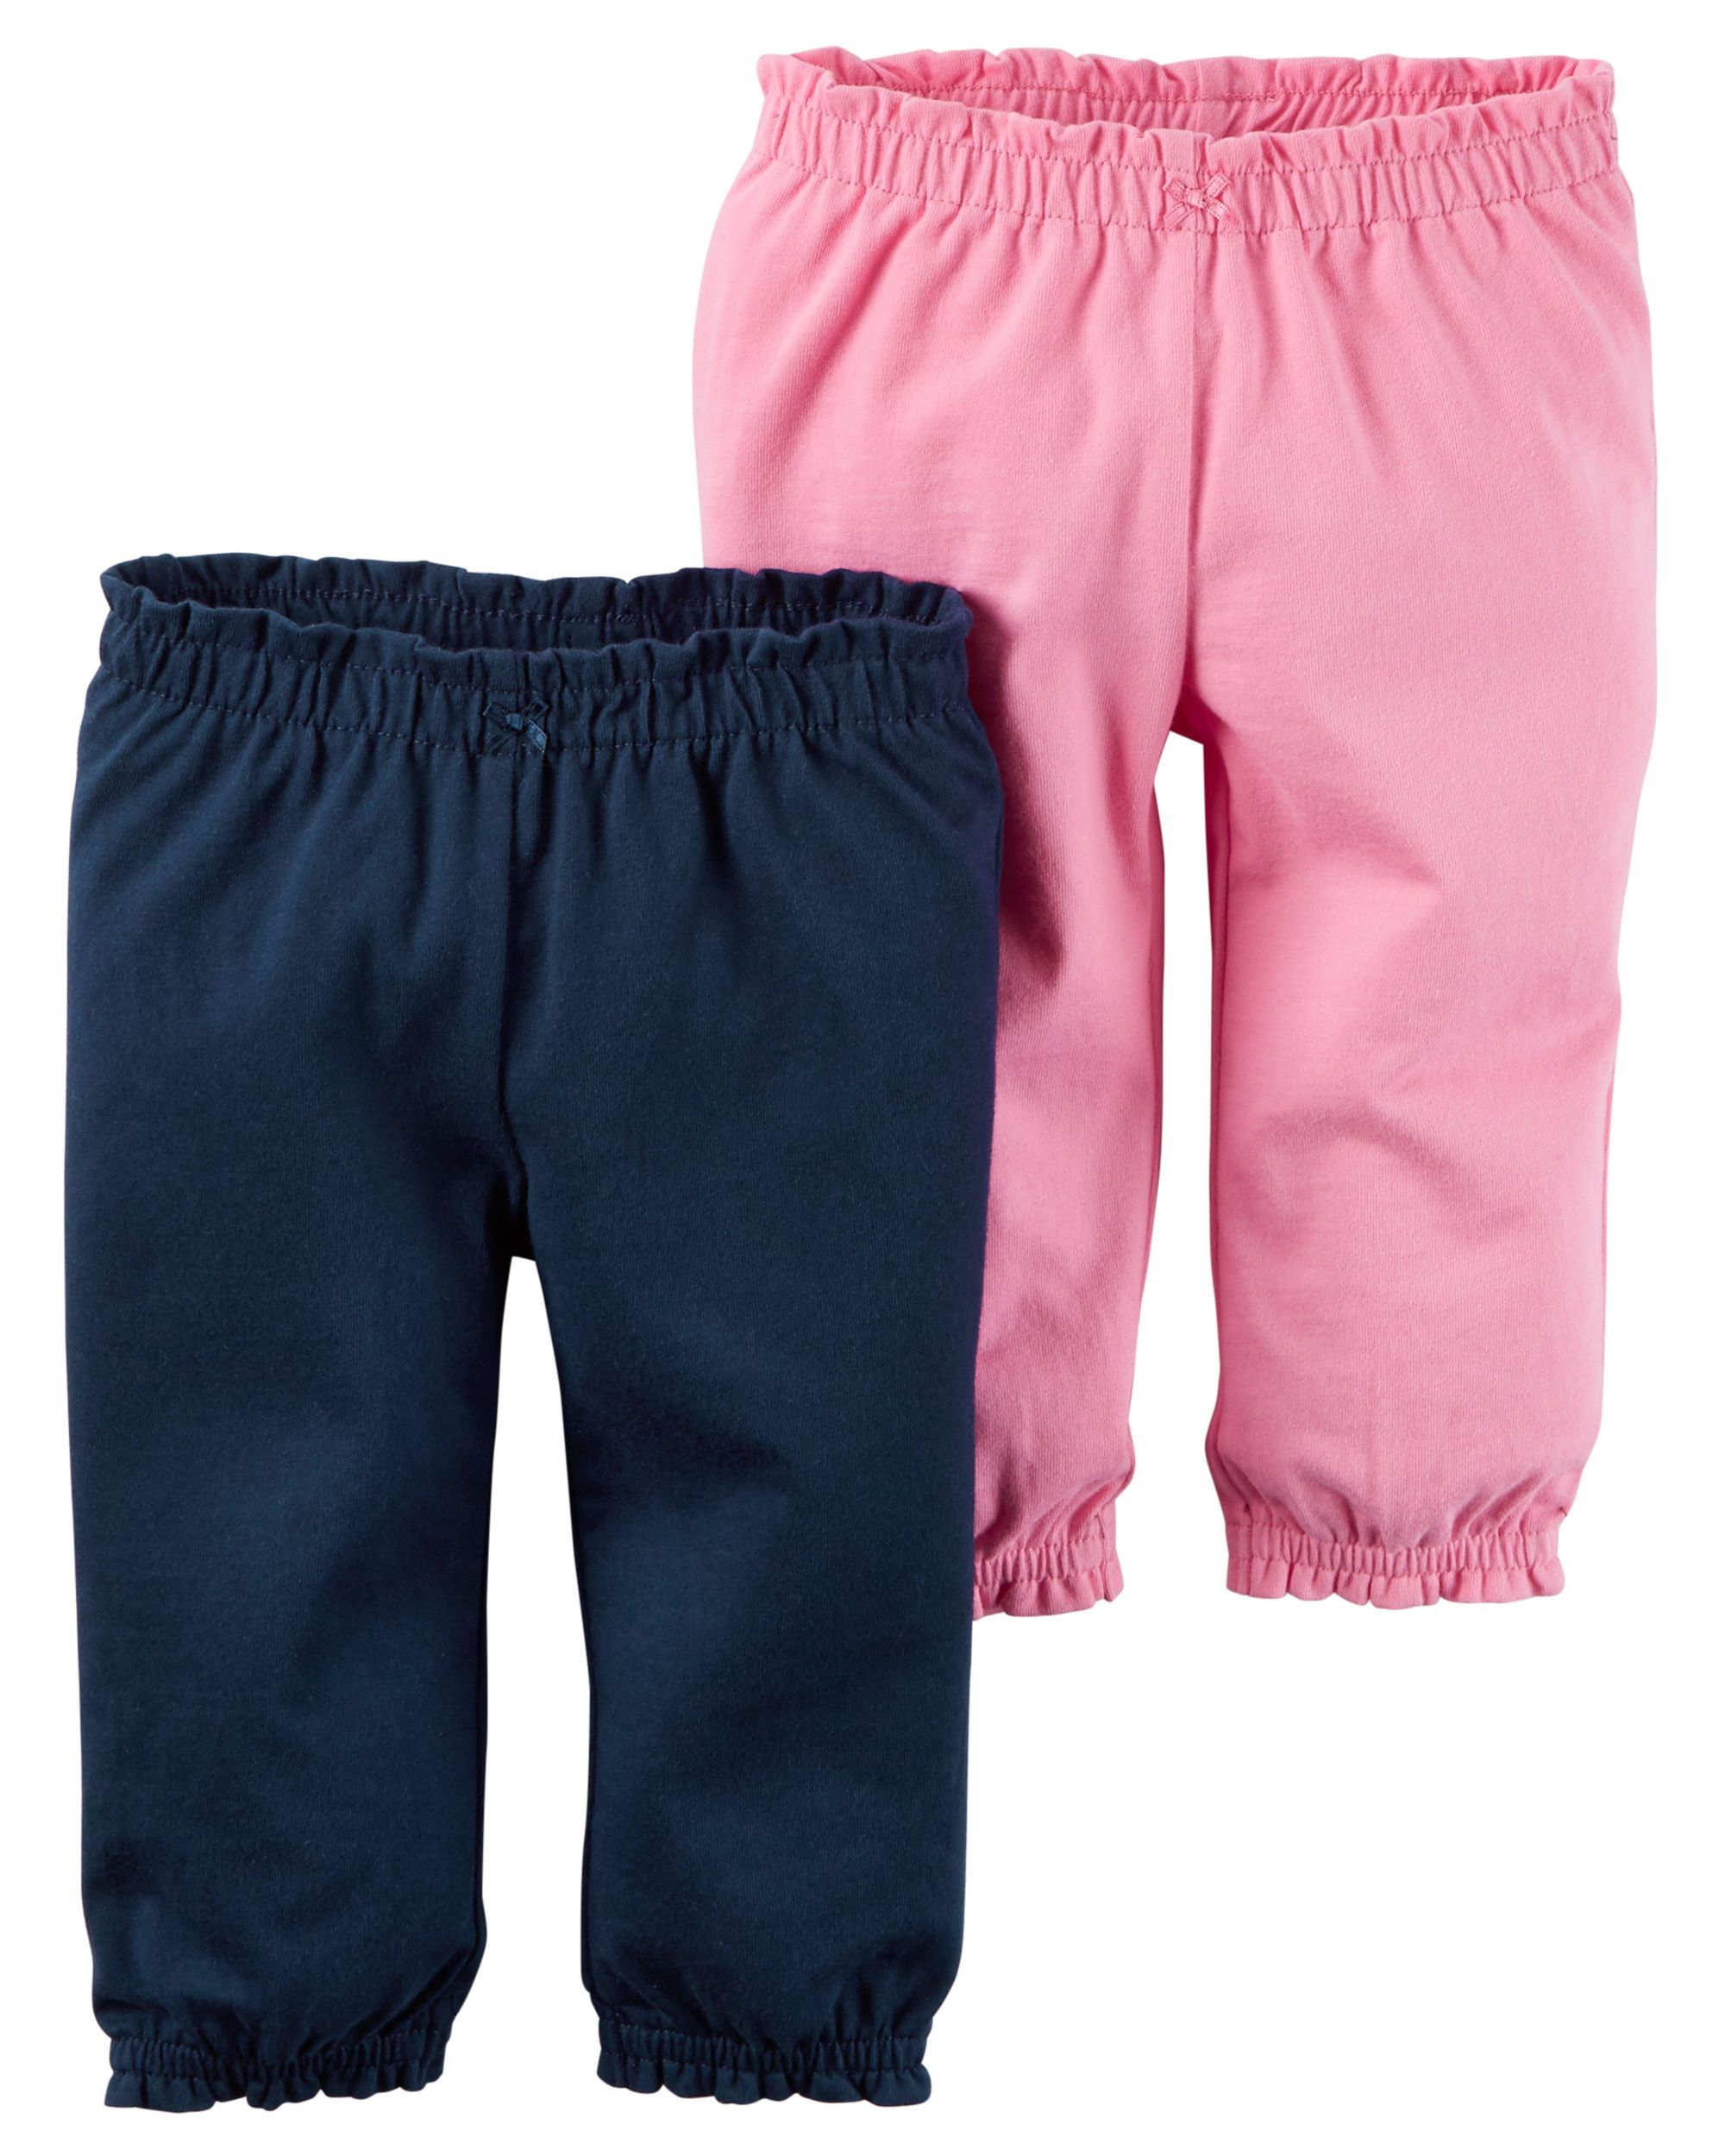 473e1d003 Baby Girl 2-Pack Babysoft Pants from Carters.com. Shop clothing &  accessories from a trusted name in kids, toddlers, and baby clothes.